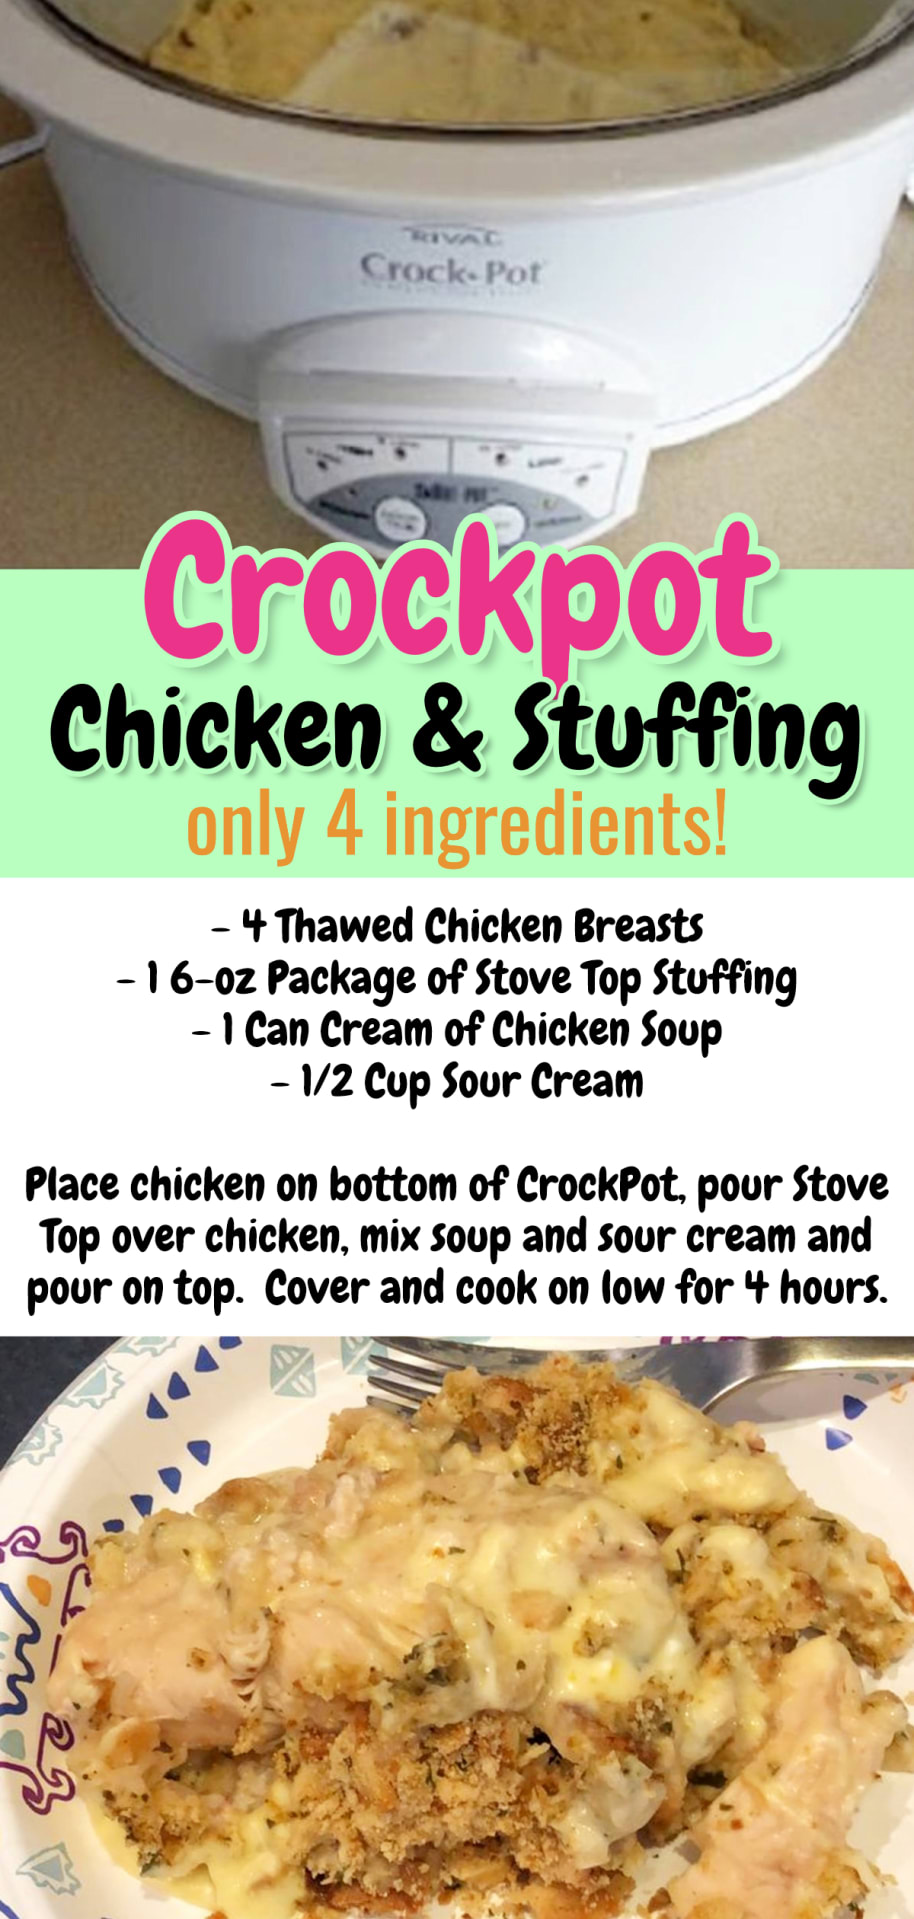 Easy Recipes with Few Ingredients - My Family's Favorite Easy Dinner Recipes #crockpotmeals